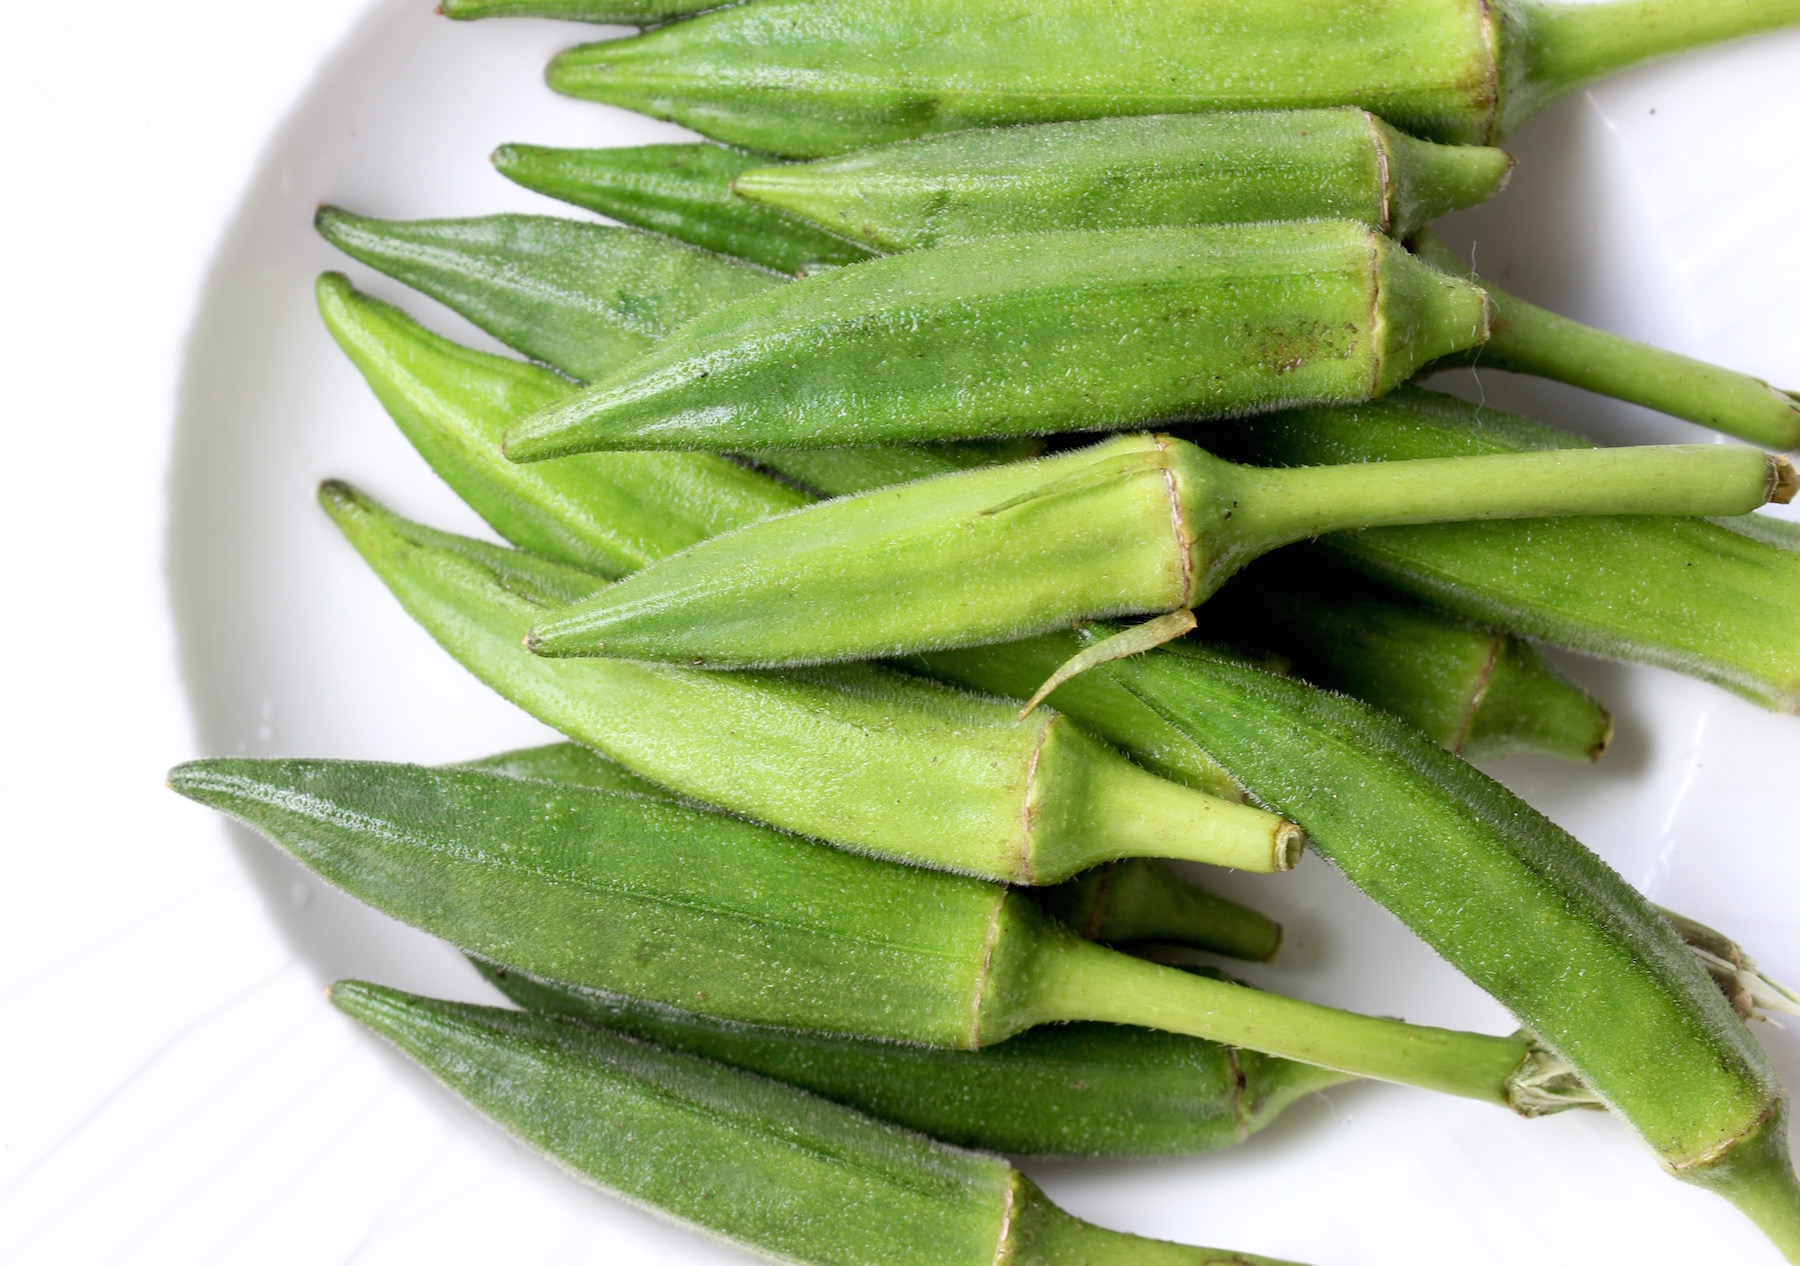 Fresh okra pods